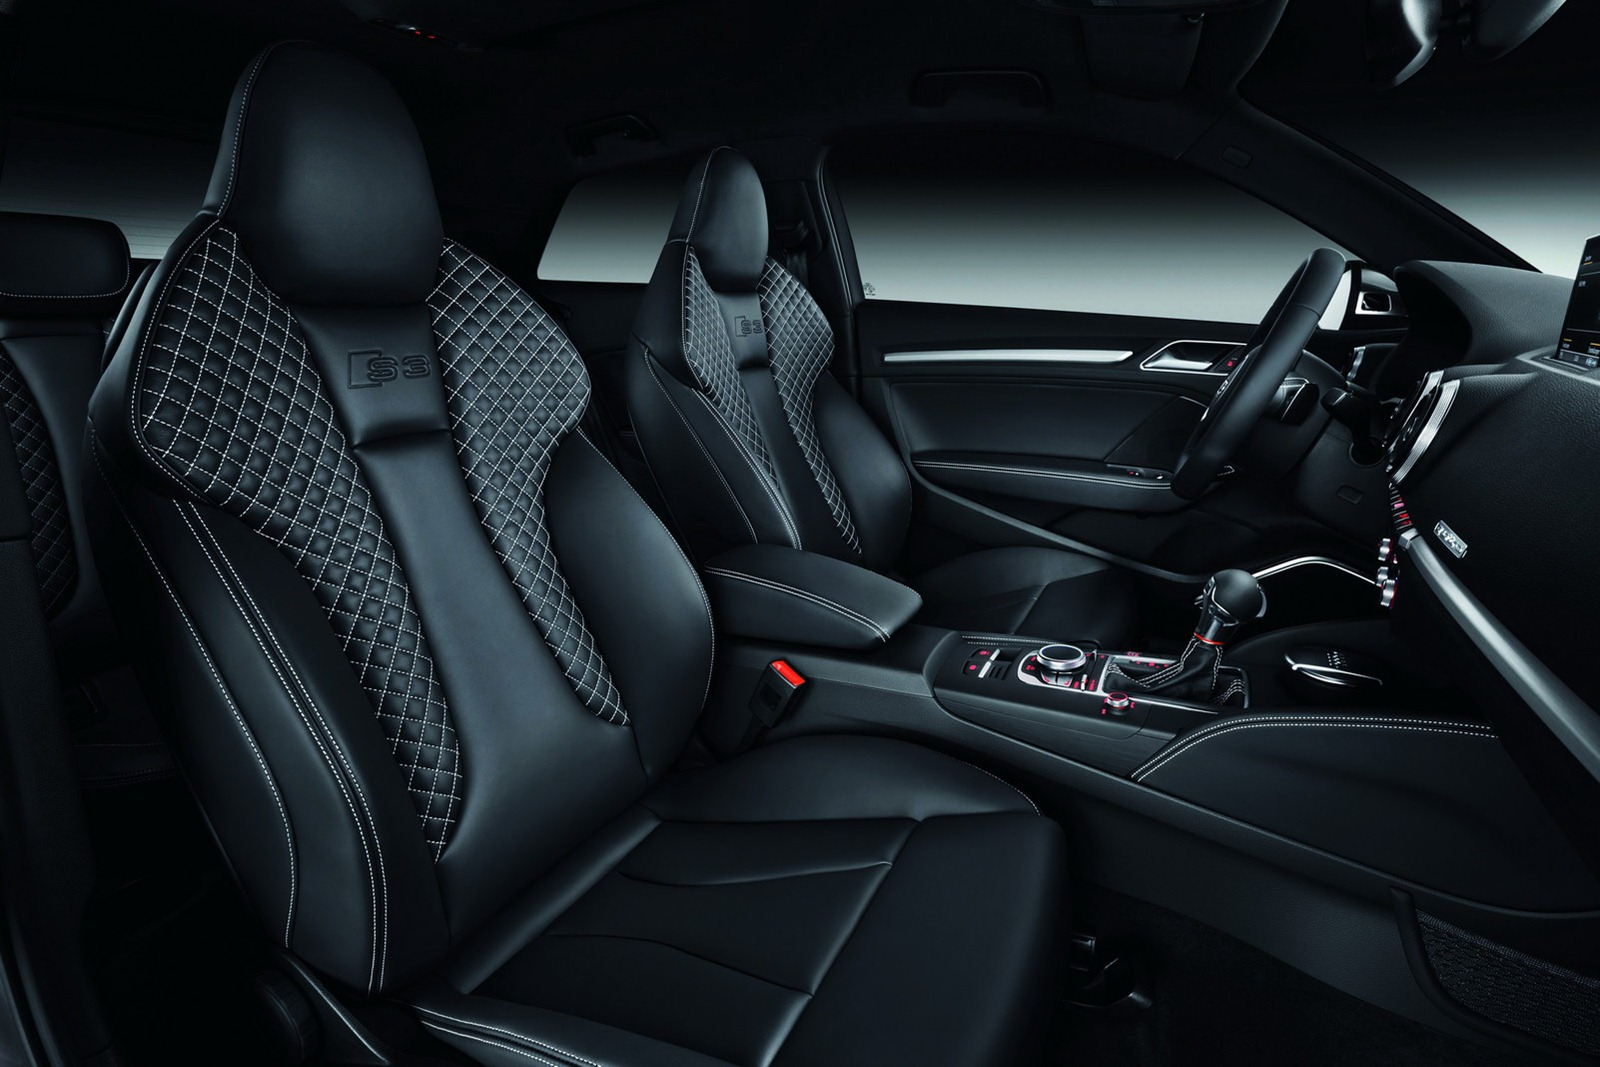 2013 audi s3 interior. Black Bedroom Furniture Sets. Home Design Ideas